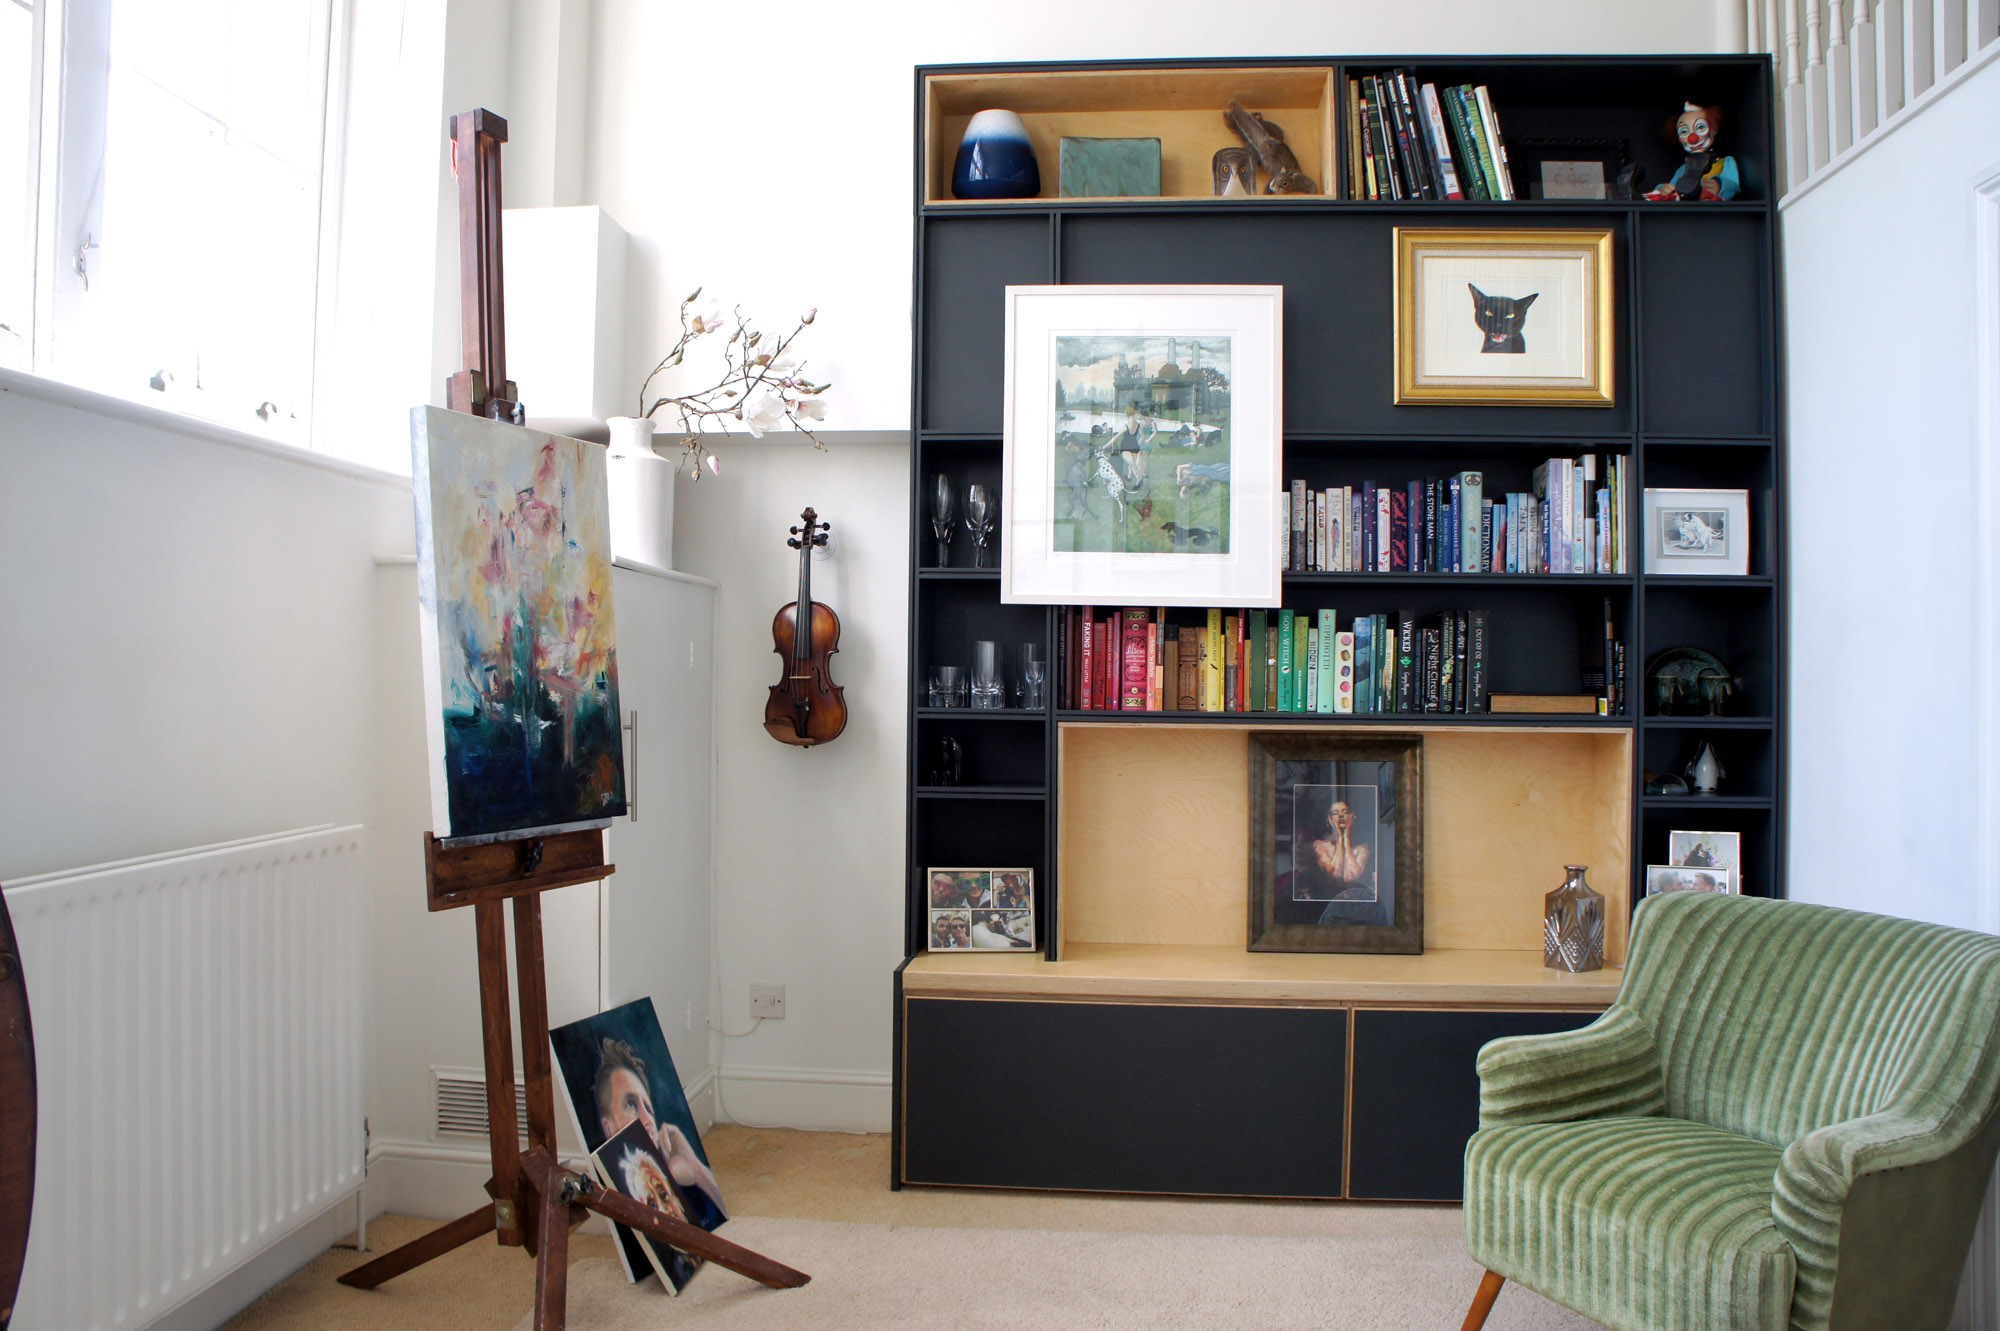 GW-Cabinetry-Interior-Solutions-Bookcases-10.jpg